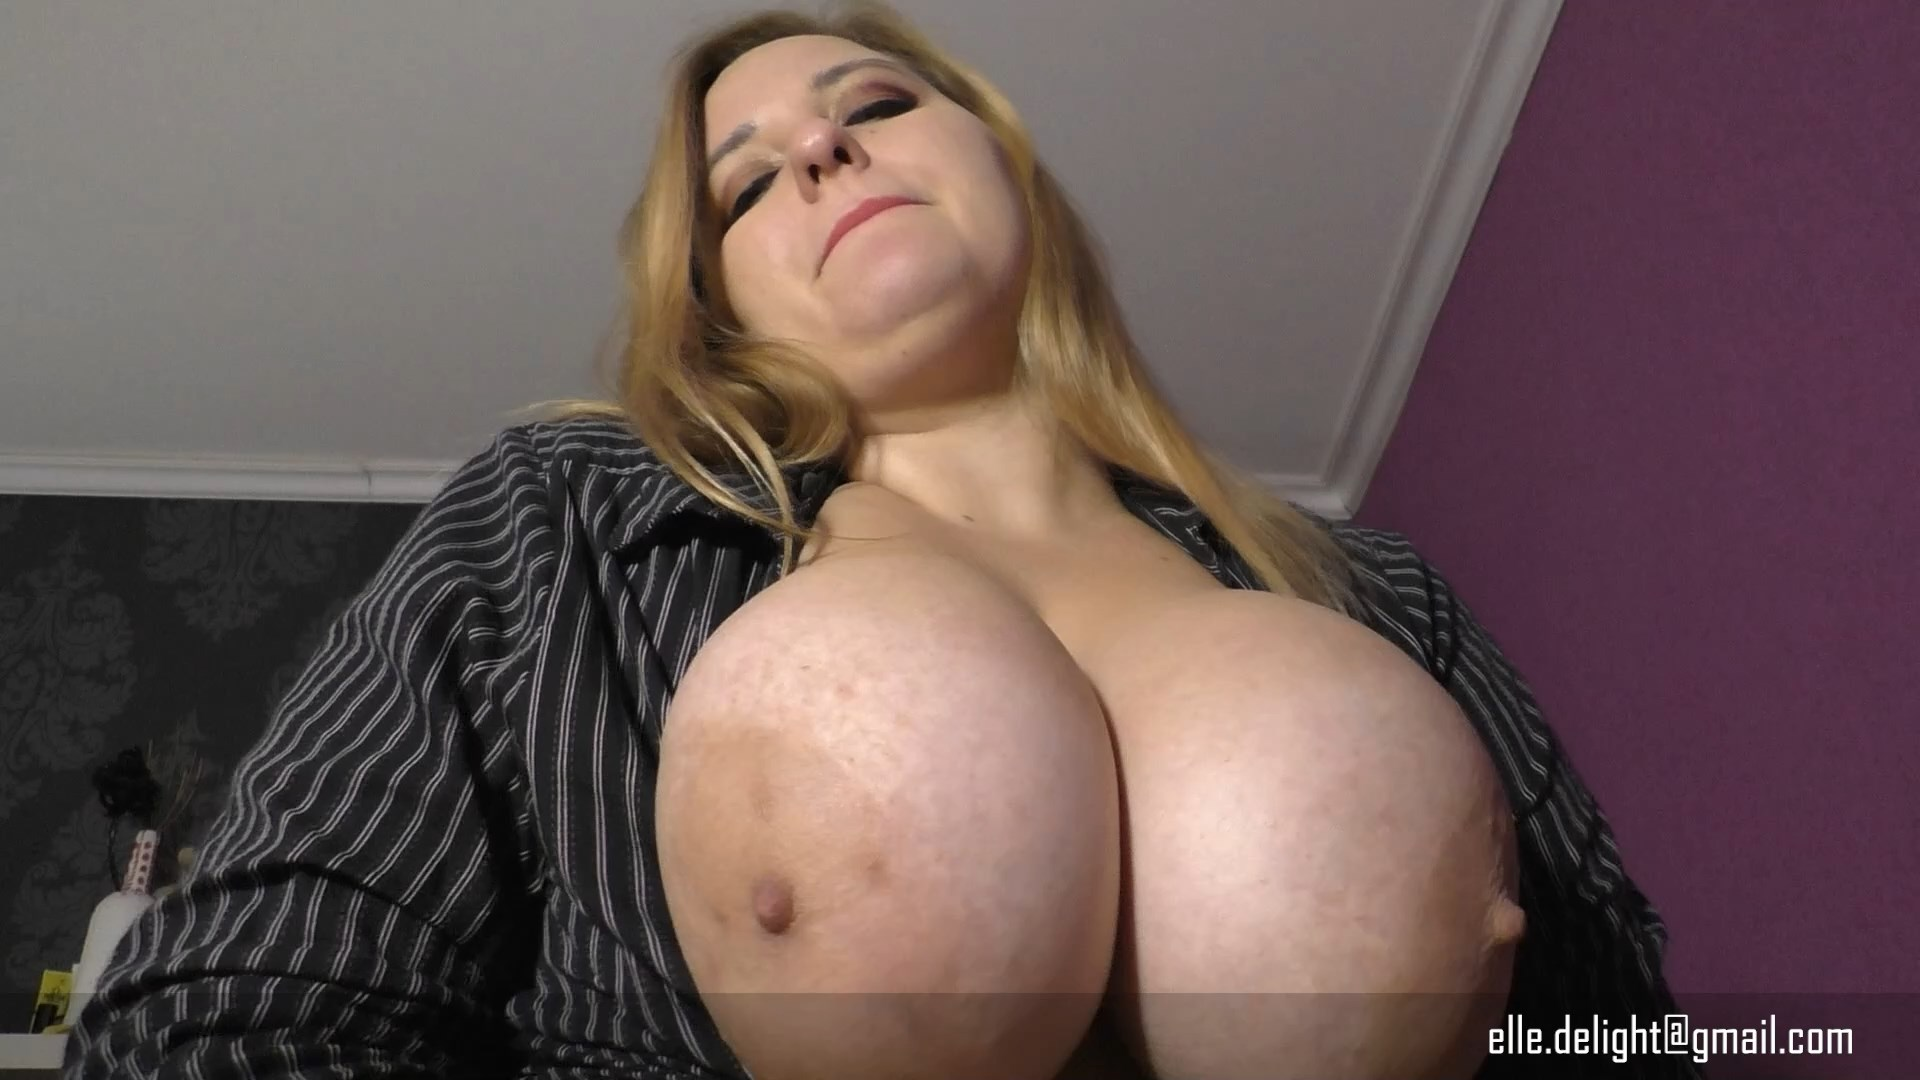 ElleDelight - Fuck the Gay Out